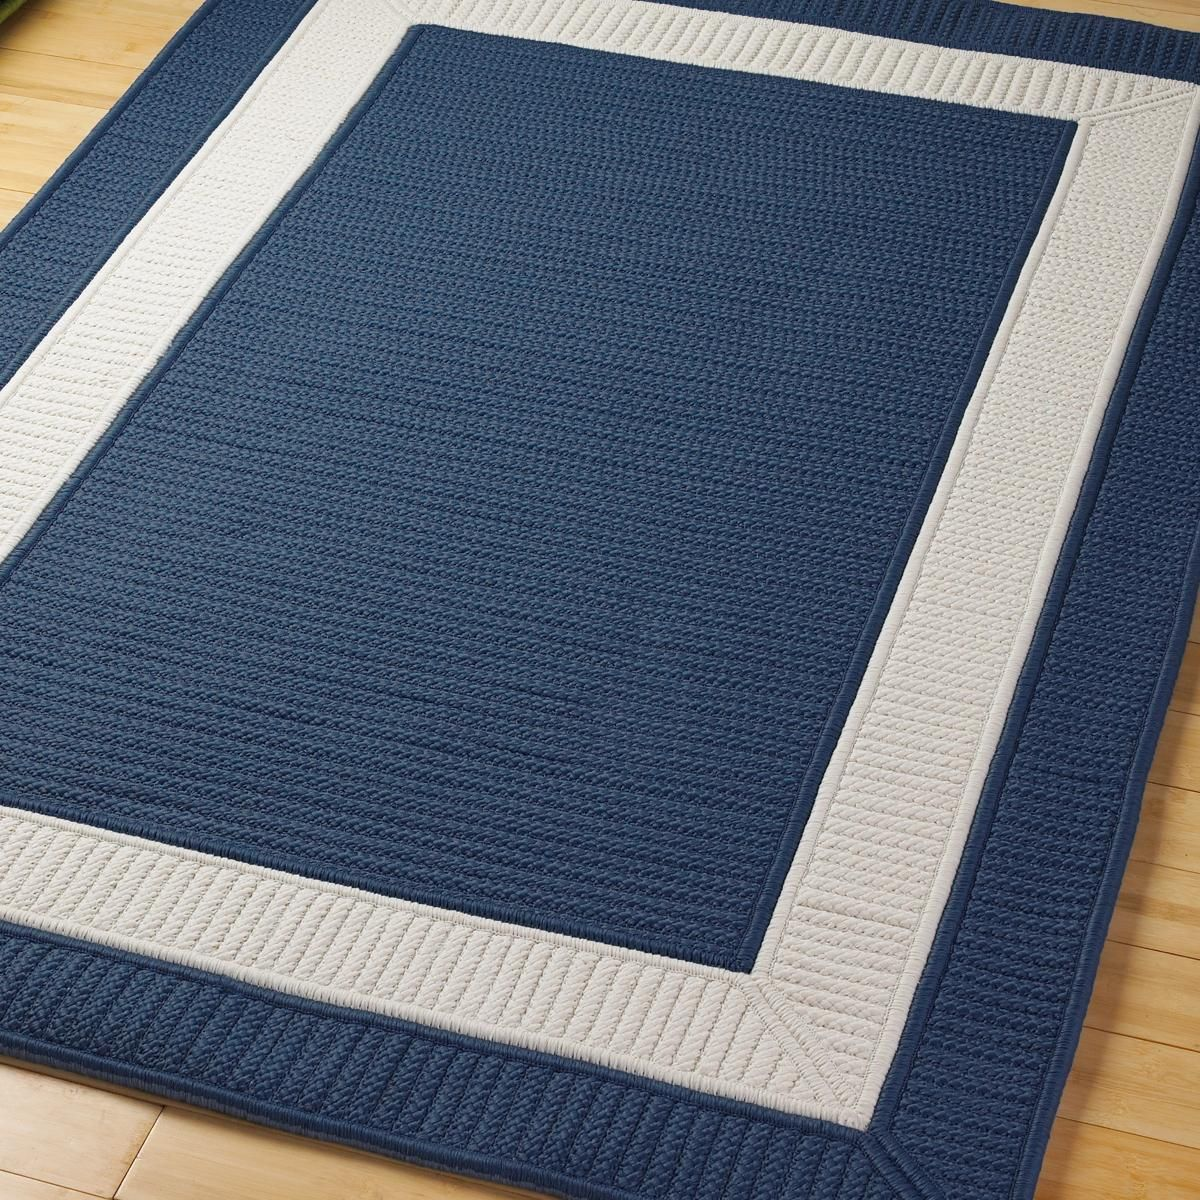 Border Braided Indoor Outdoor Rug 7x7 In Navy 448 The Only One Geoff And I Agree On Of Options Circle Or Square